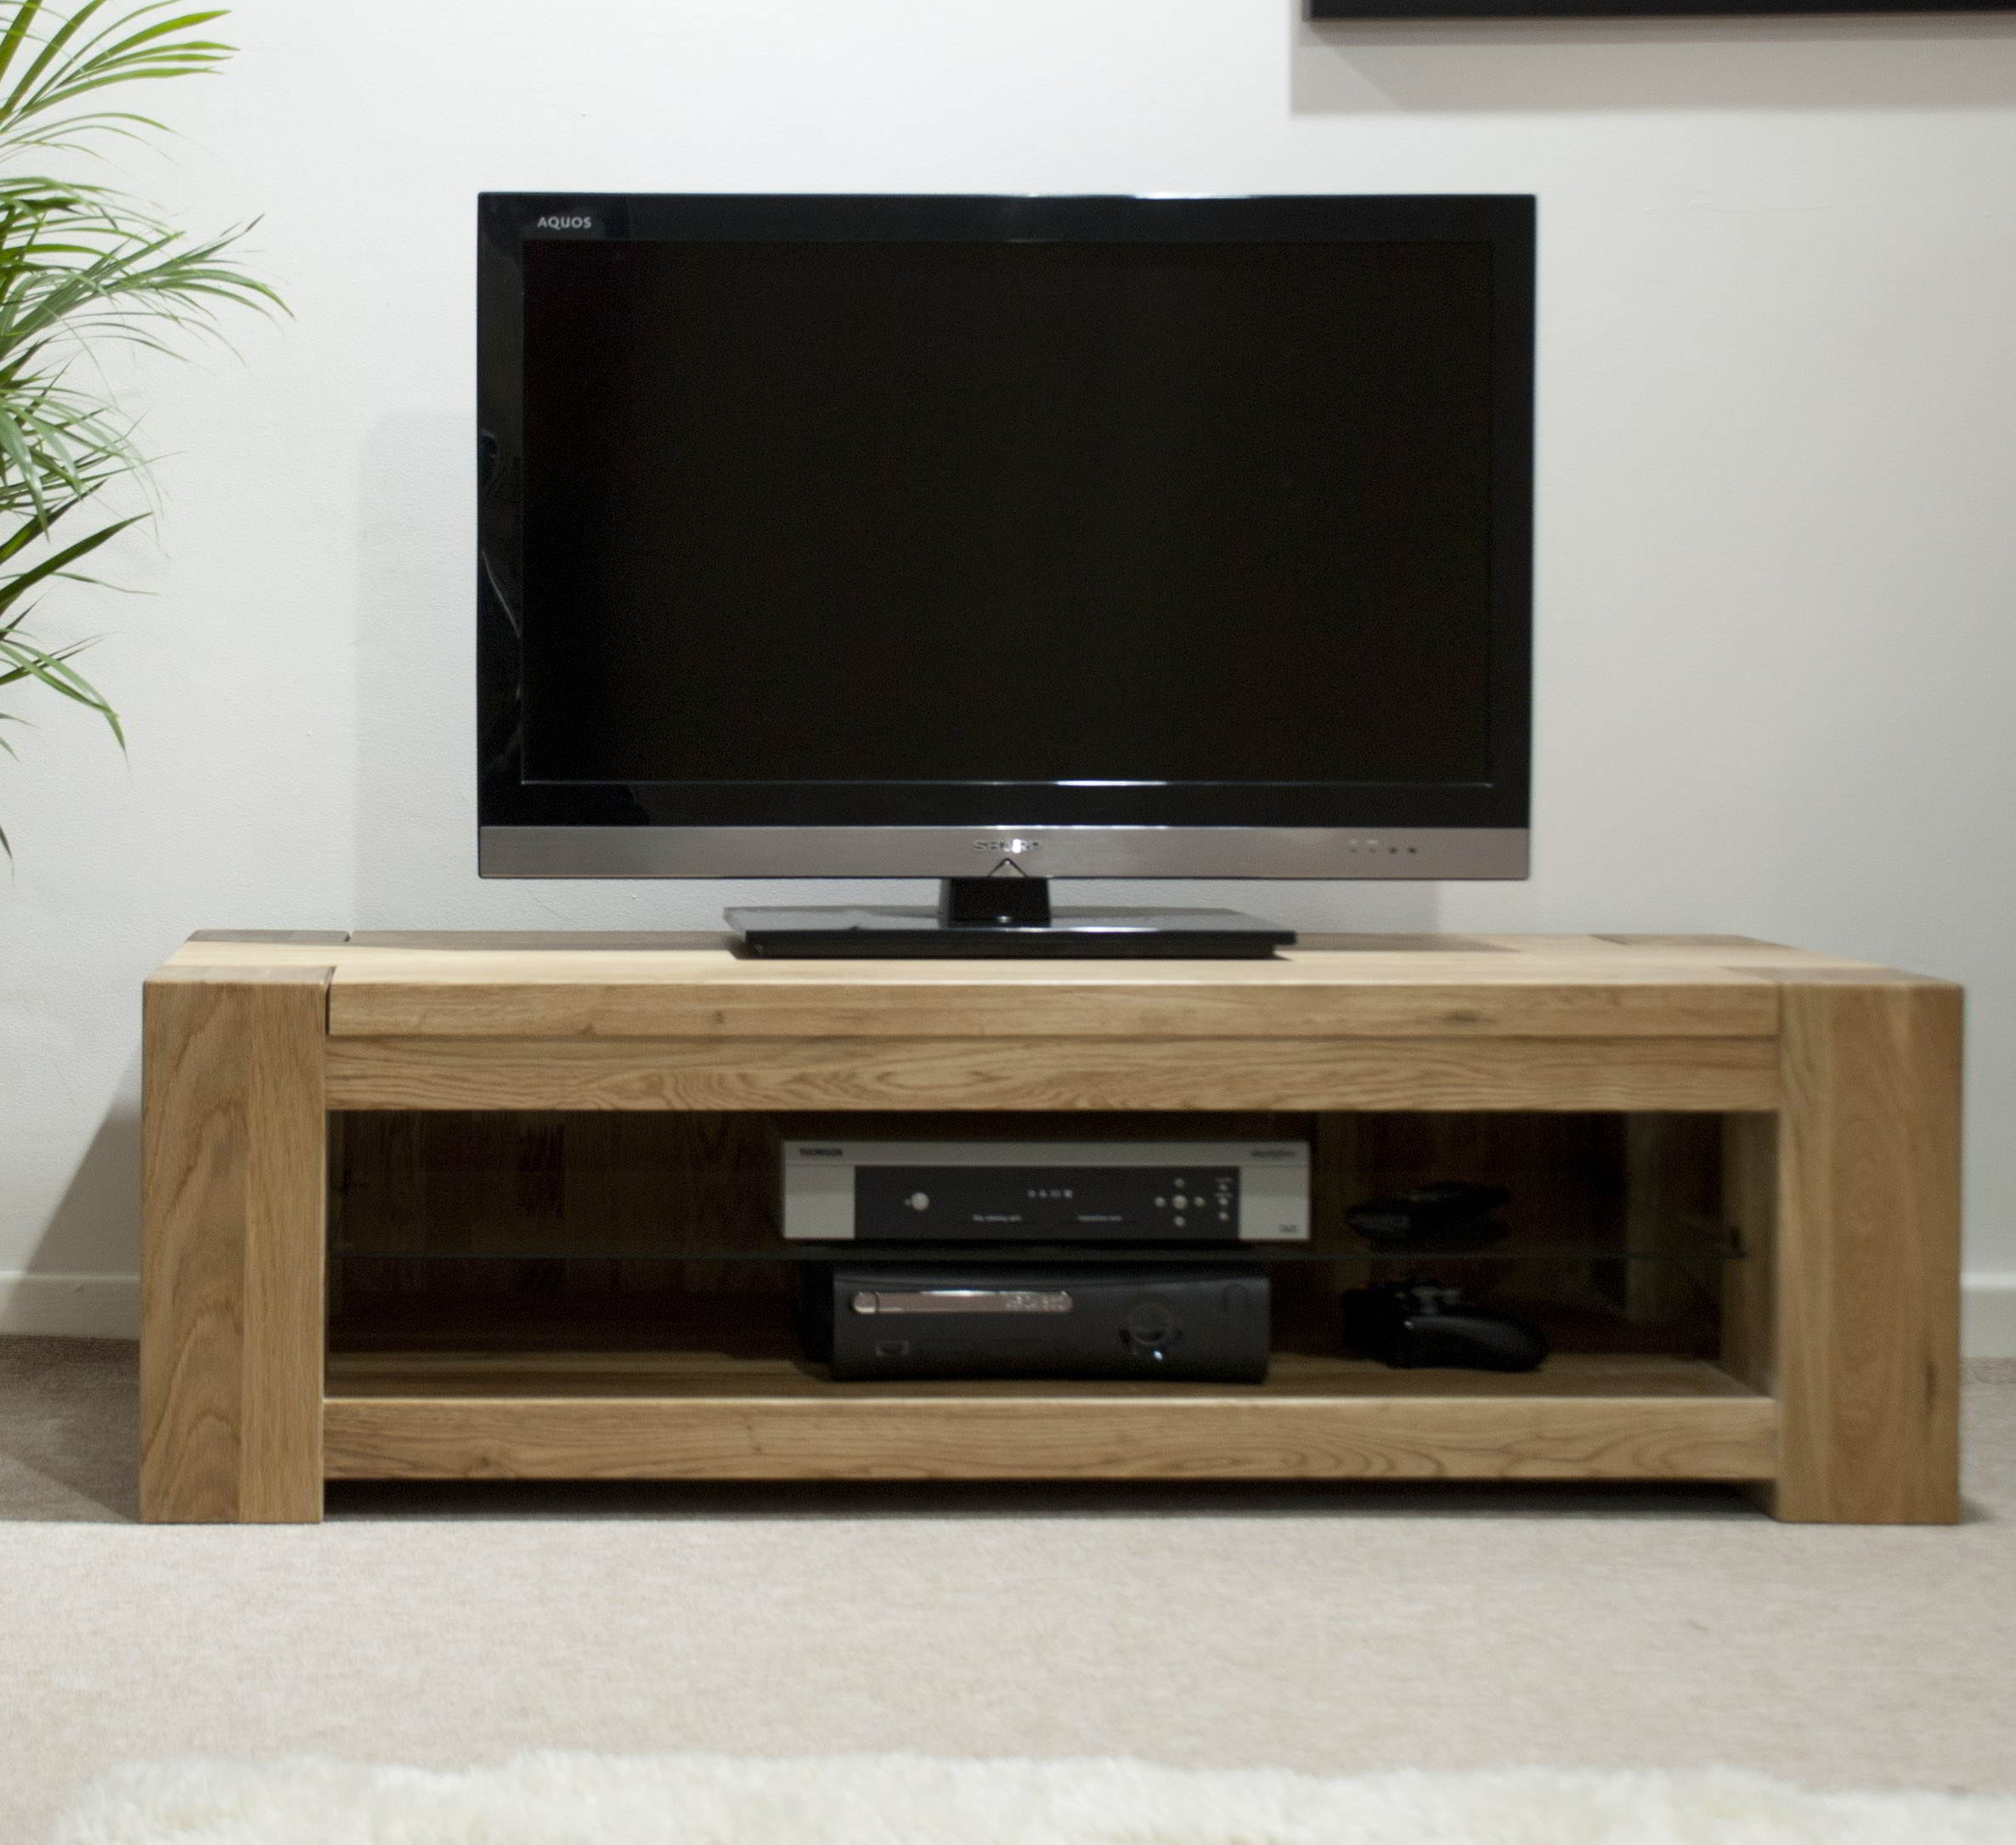 padova solid oak furniture plasma television cabinet stand unit. Black Bedroom Furniture Sets. Home Design Ideas